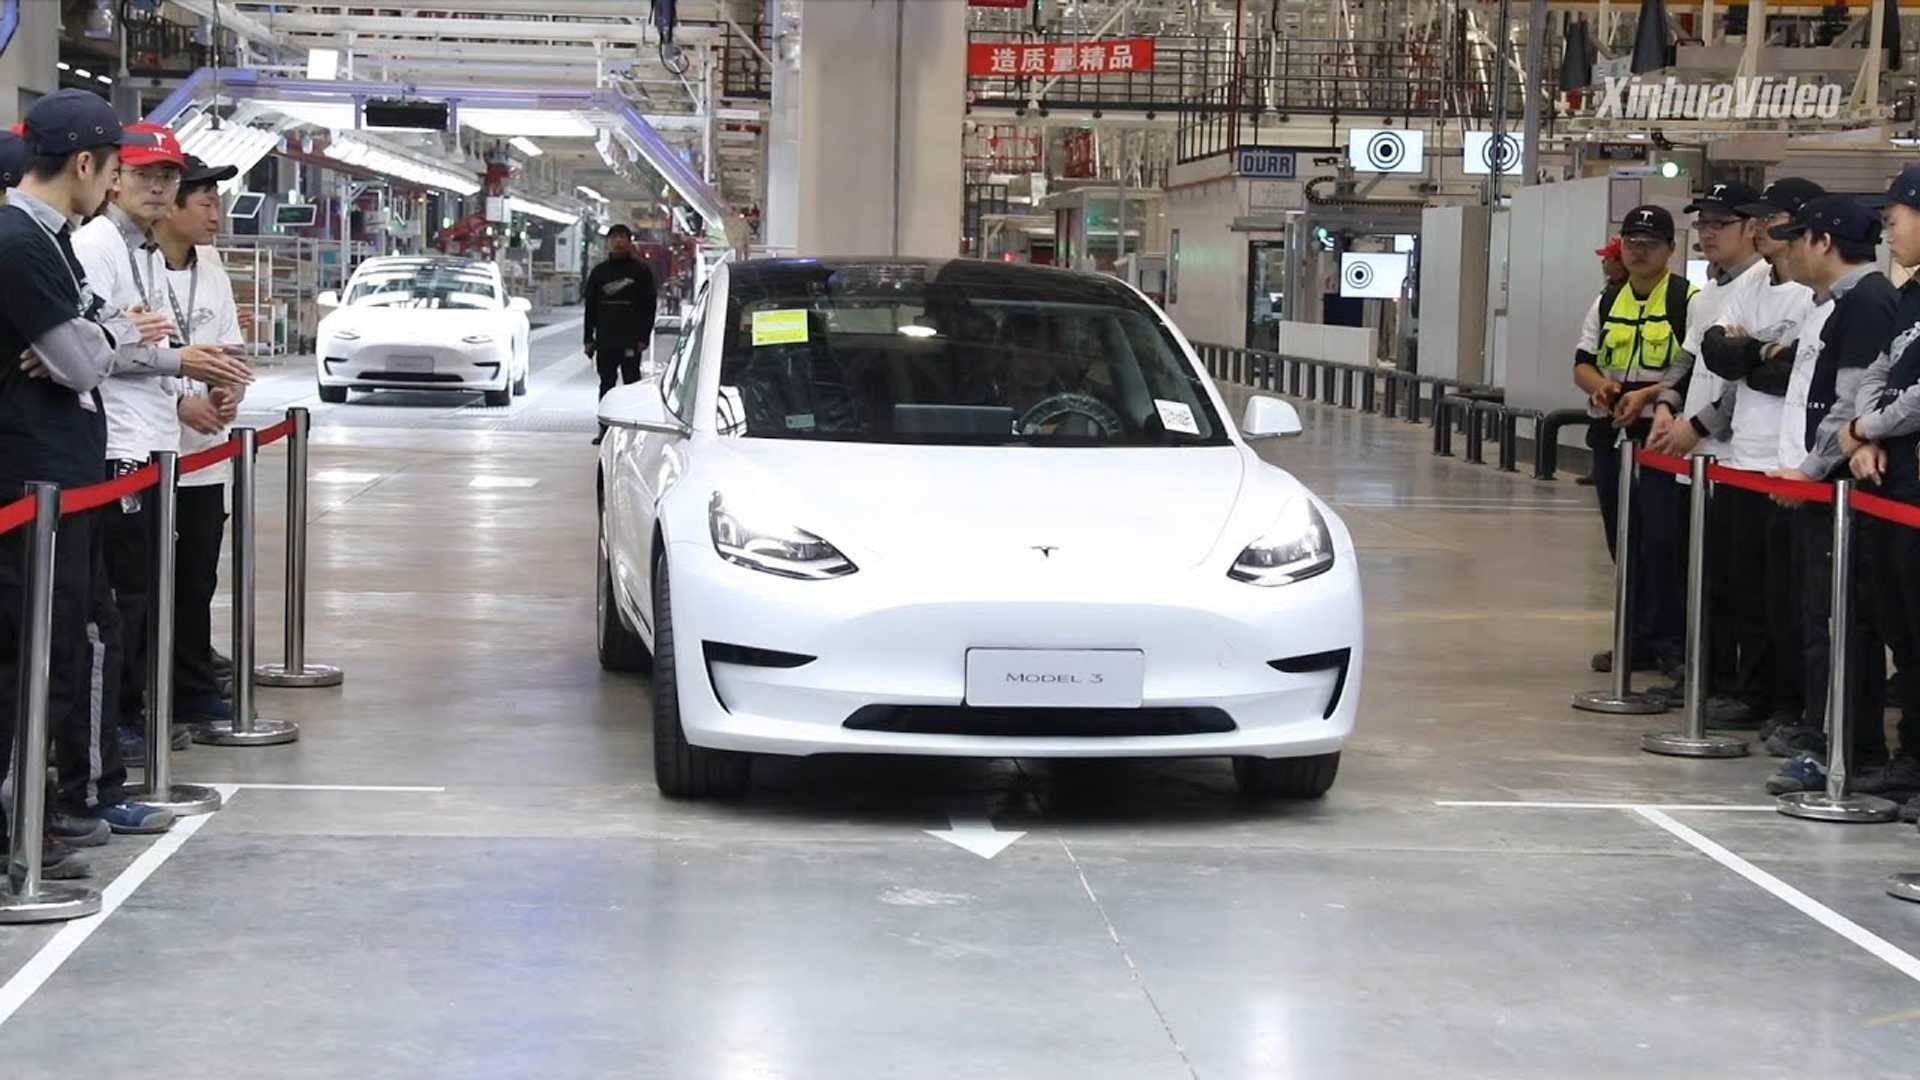 Images From China: Are Tesla Model 3 Fit-And-Finish Issues Behind Us?